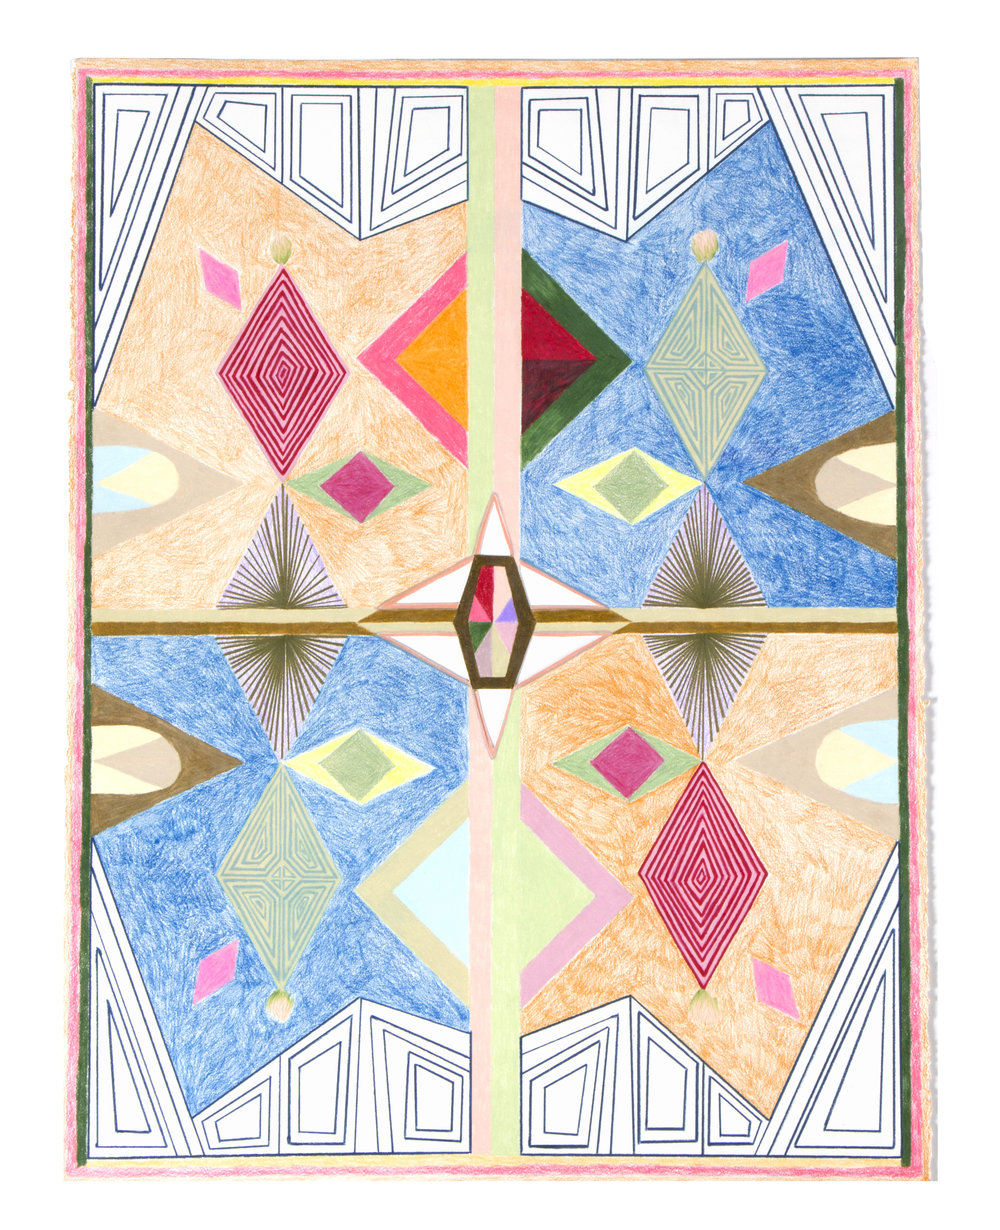 Complementary Diamond Pattern, 2017